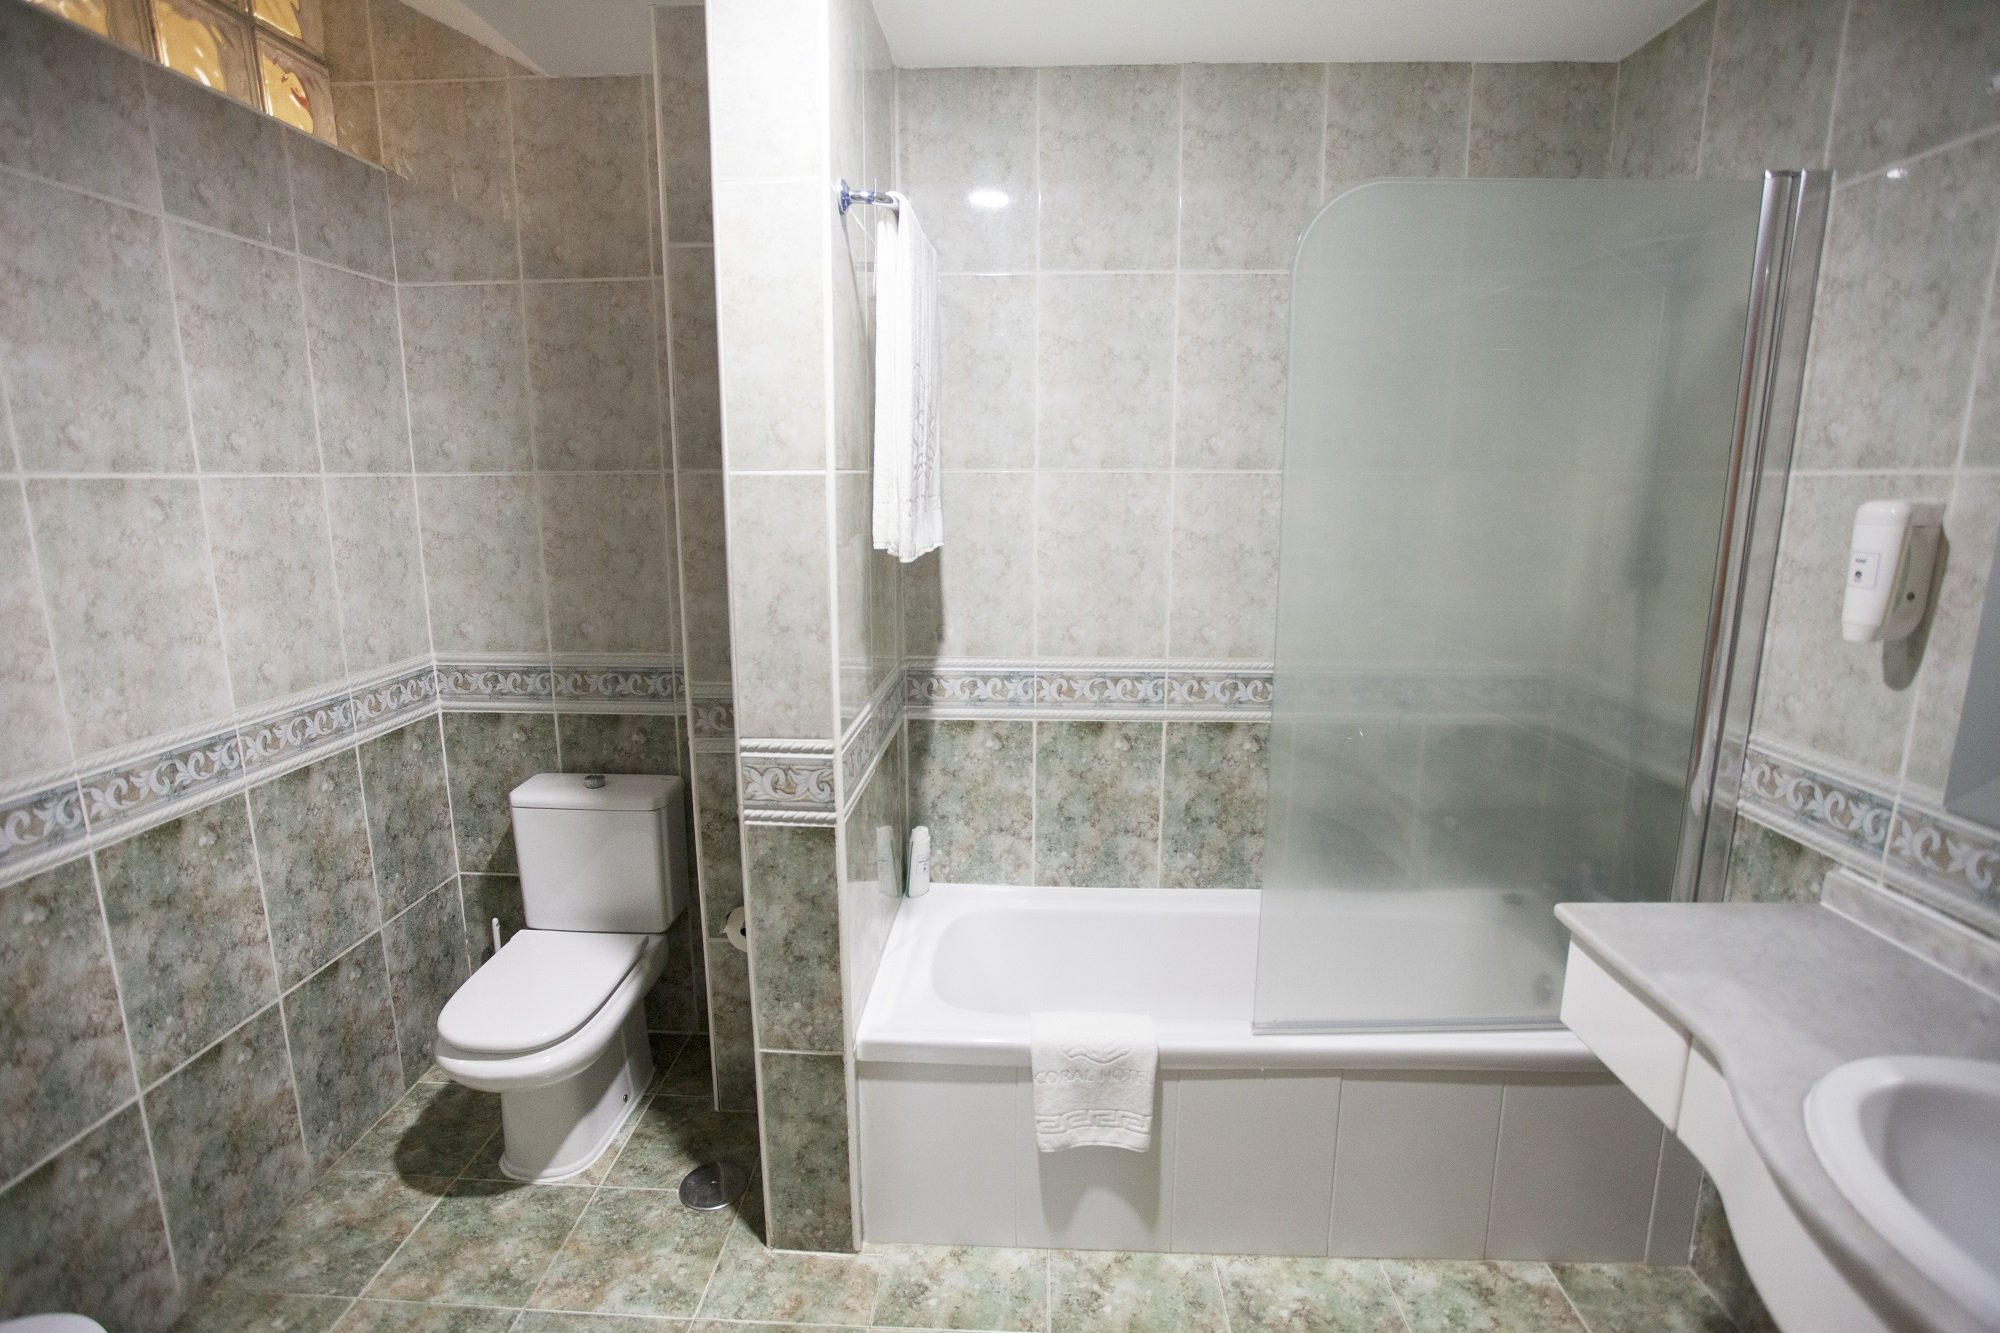 2 BEDROOM APARTMENT WITH PATIO AND SEA VIEW (2-4 PERSONS)